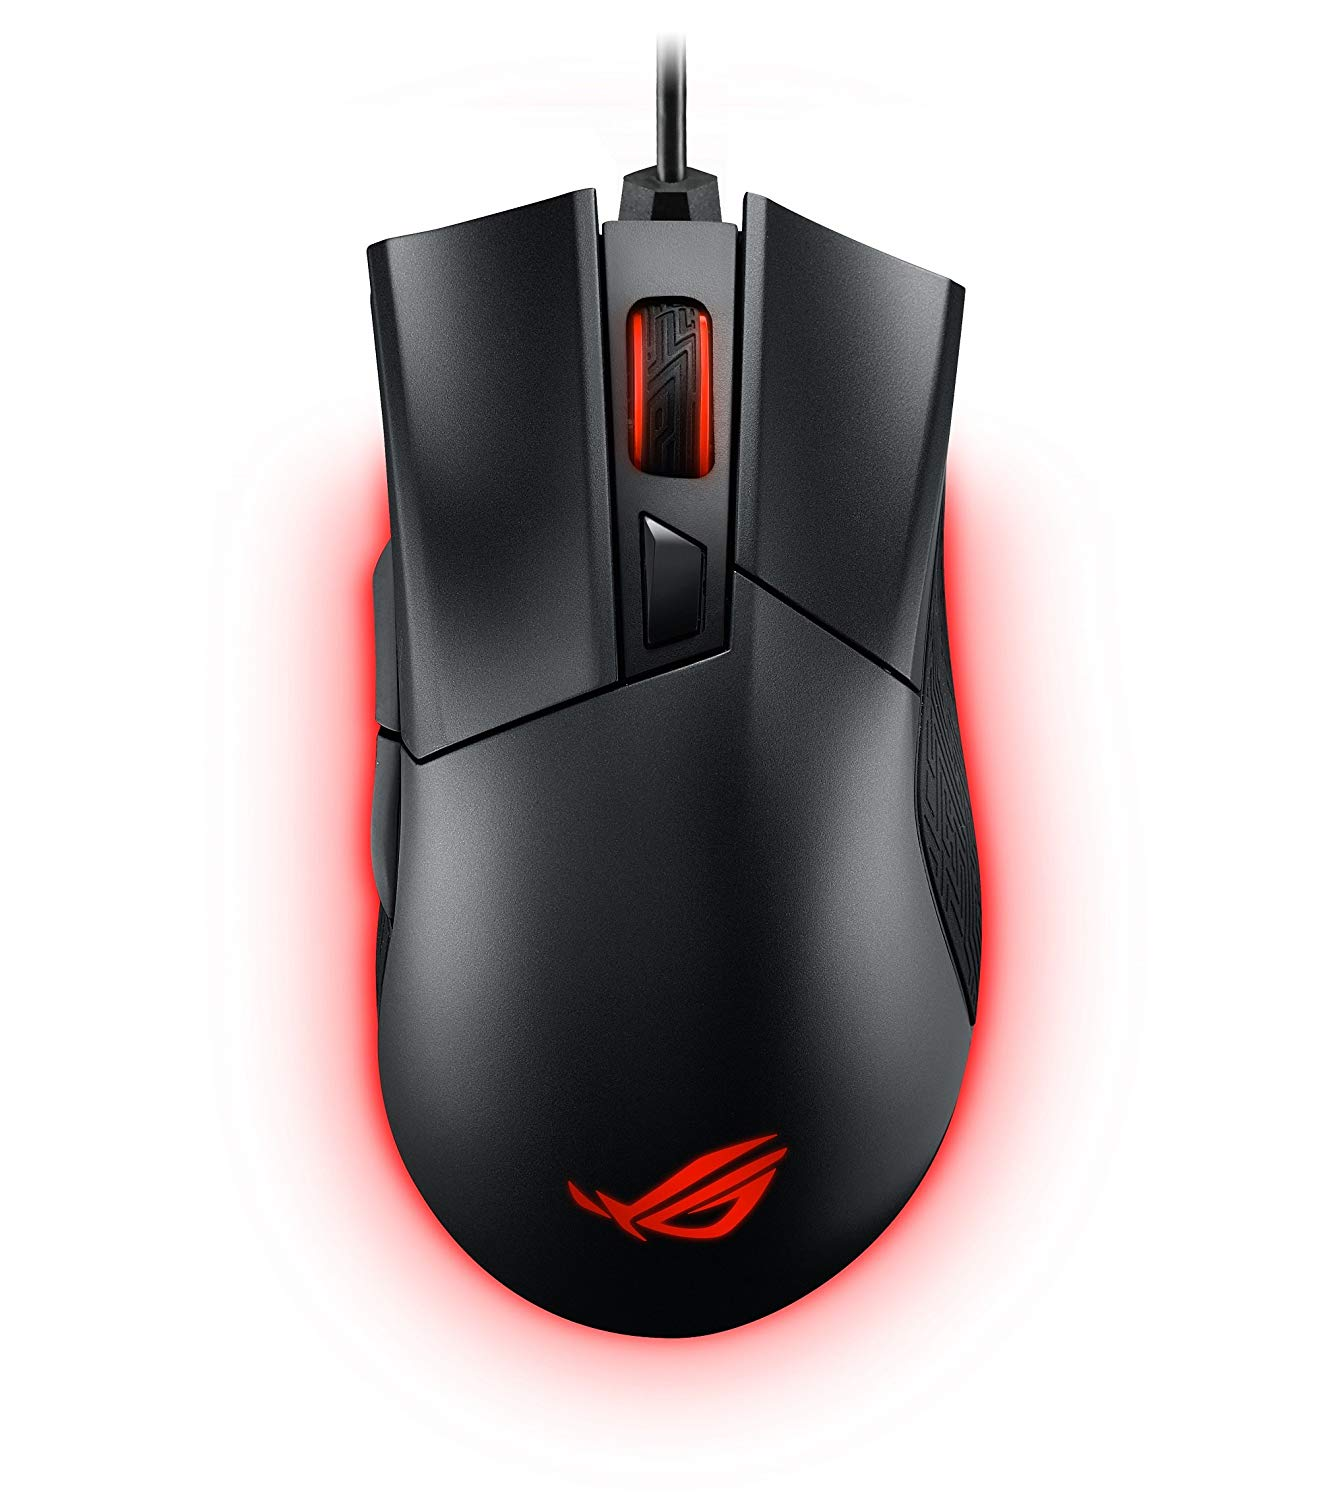 ASUS ROG Gladius II Aura Sync USB Wired Optical Ergonomic Gaming Mouse with DPI target button (12000 DPI) - ROG GLADIUS II sunsonny t m30 usb wired 6 button 600 1000 1600dpi adjustable led gaming mouse golden red